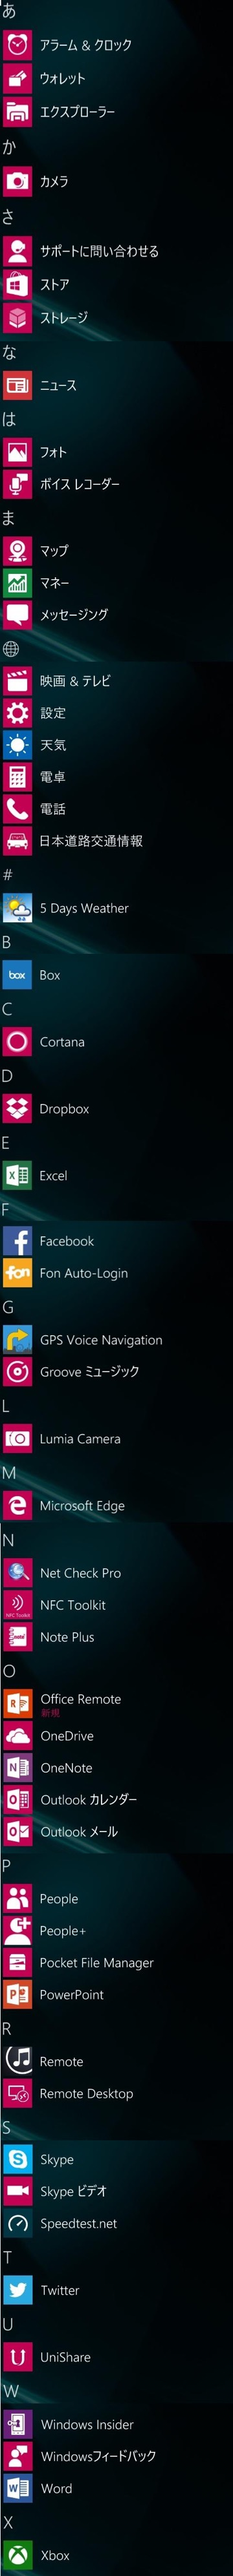 Windows10mobile_All_Apps